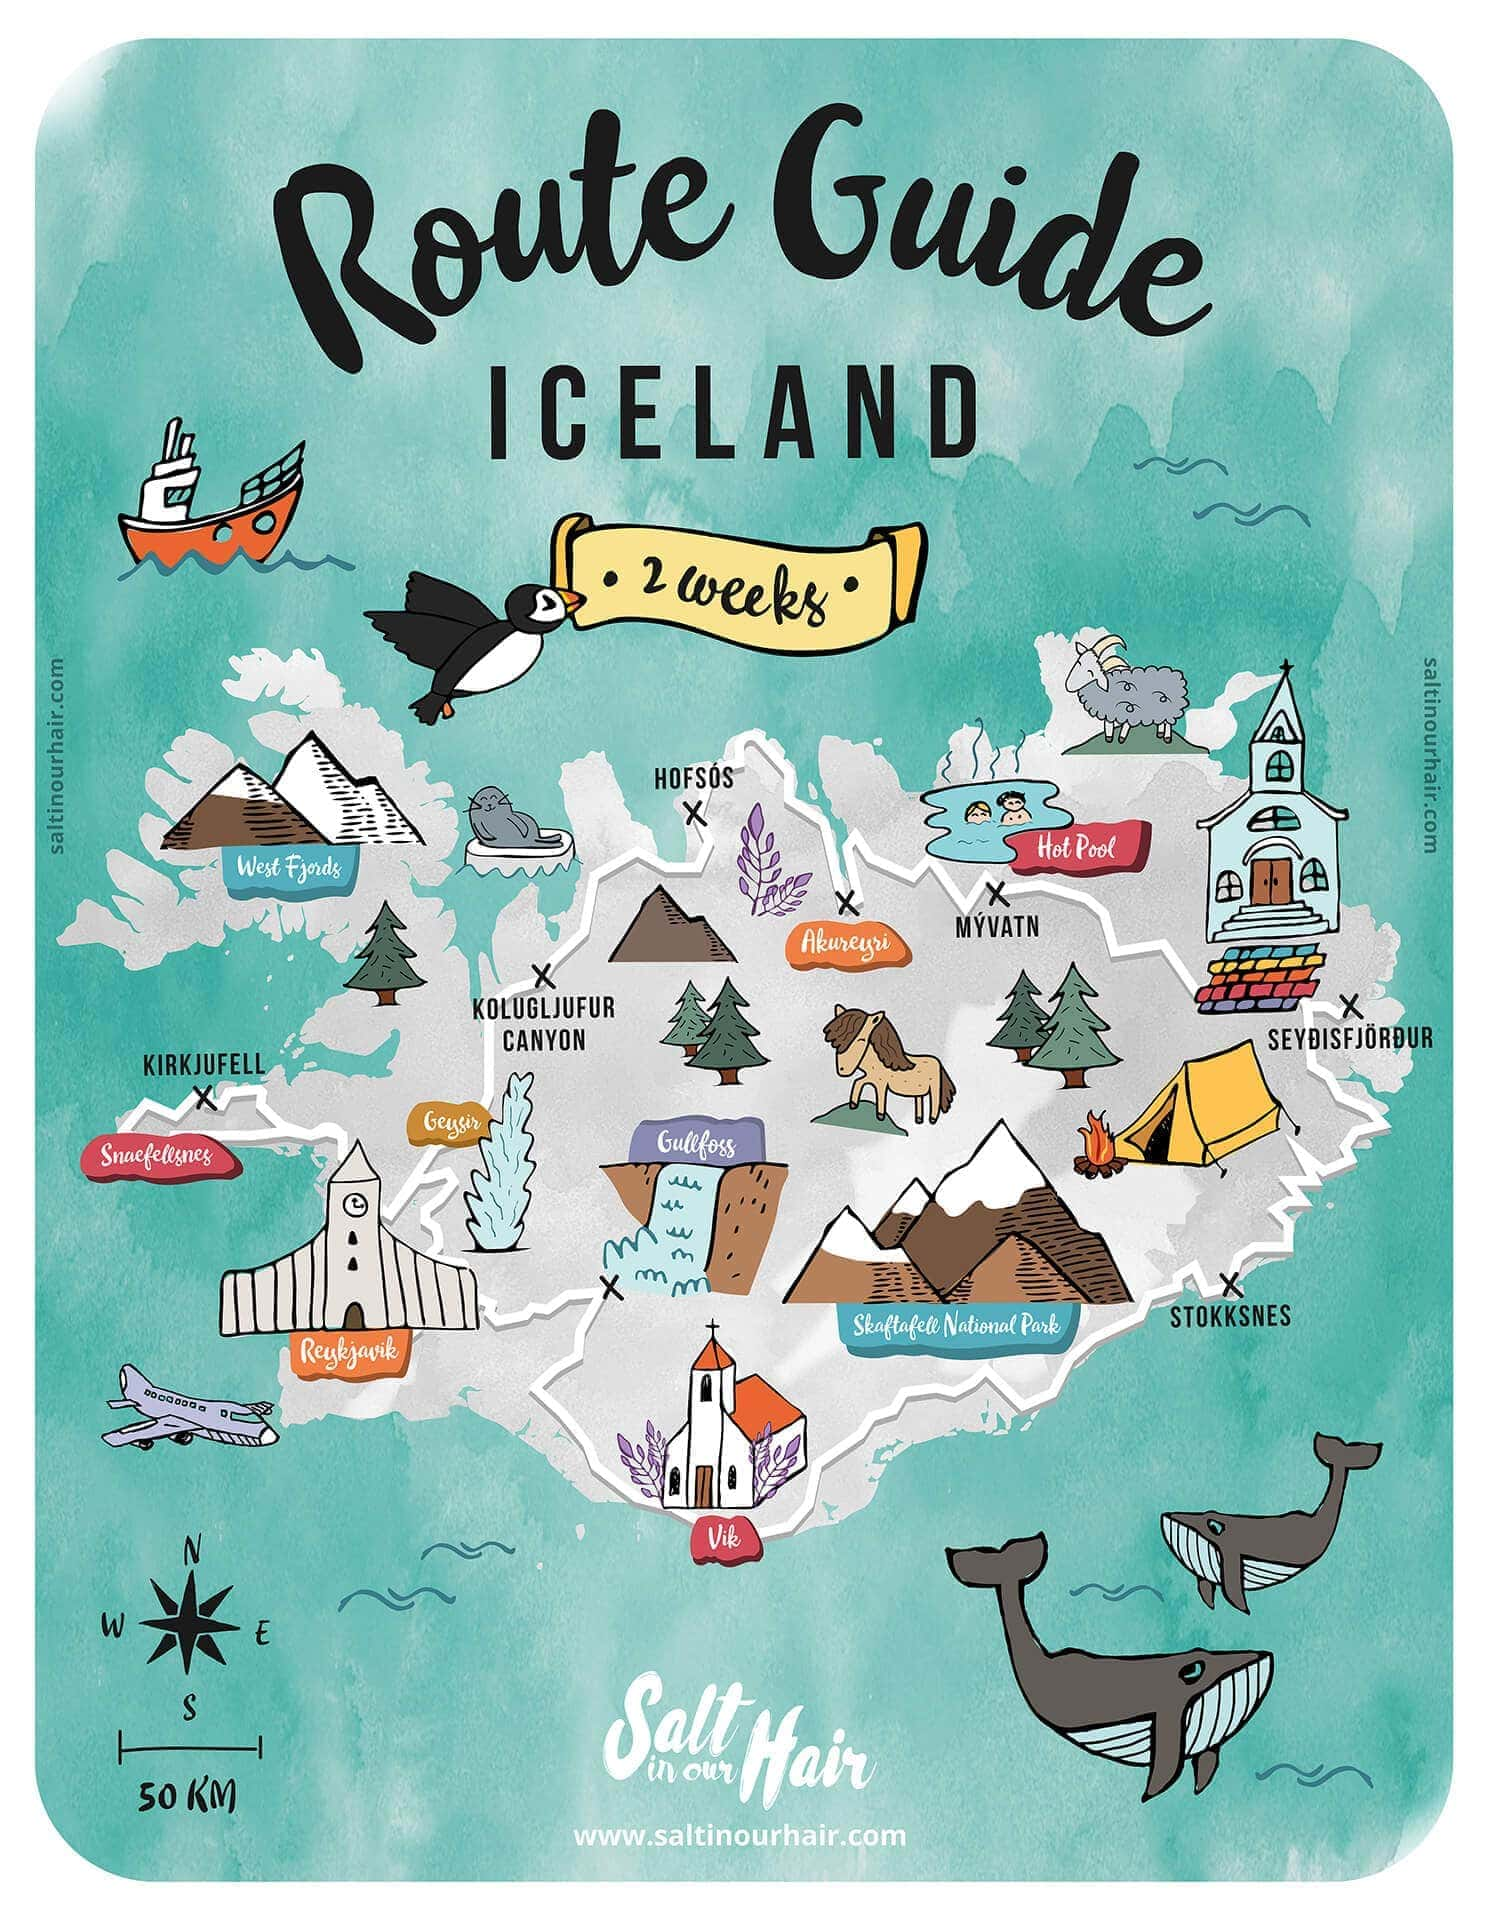 iceland route guide map